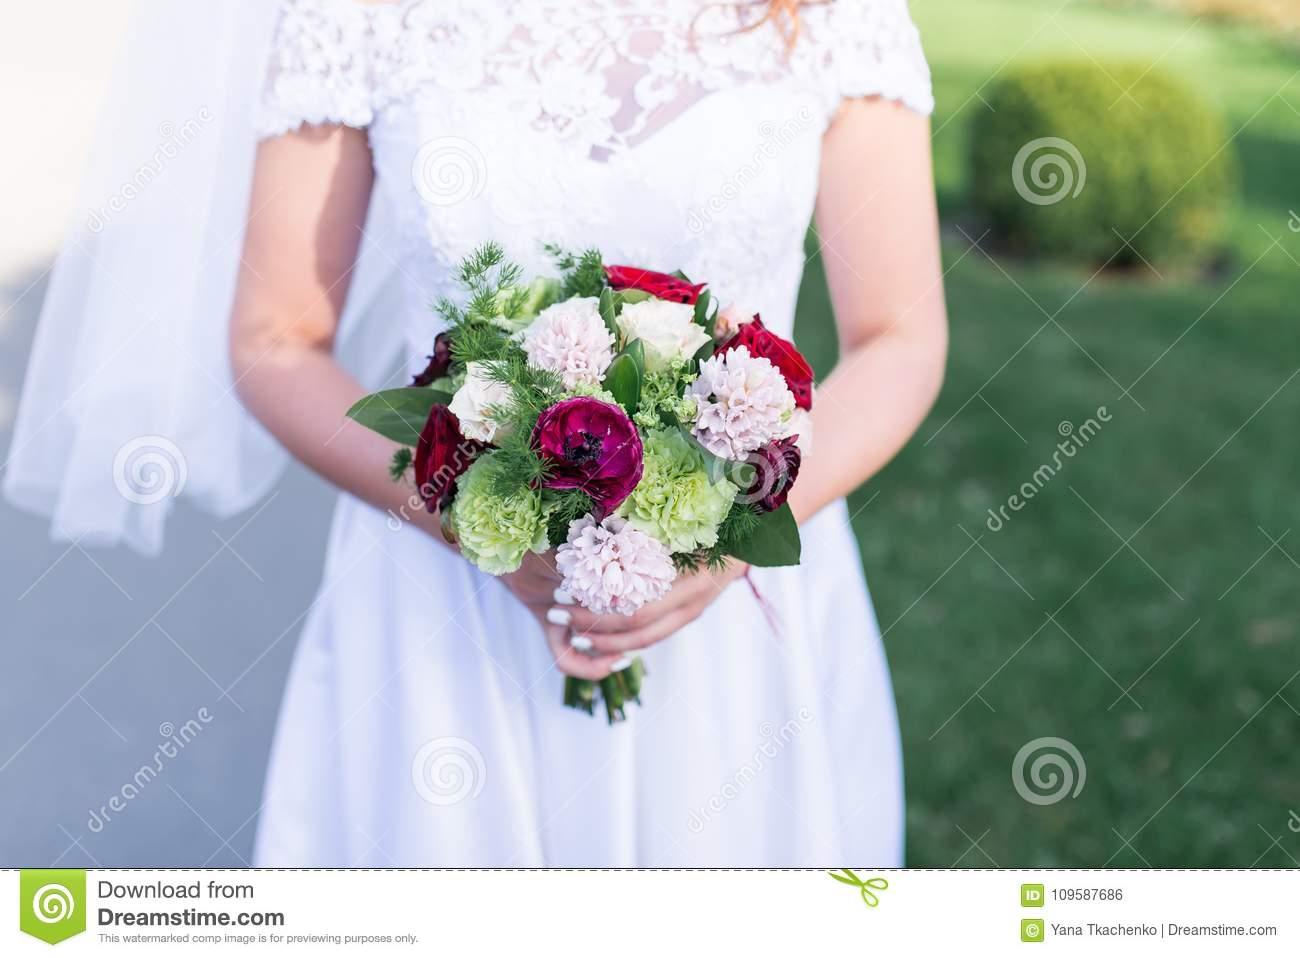 The Bride Holds A Wedding Bouquet With White Pink Red Flowers And Greenery Stock Photo Image Of Elegance Bouquet 109587686